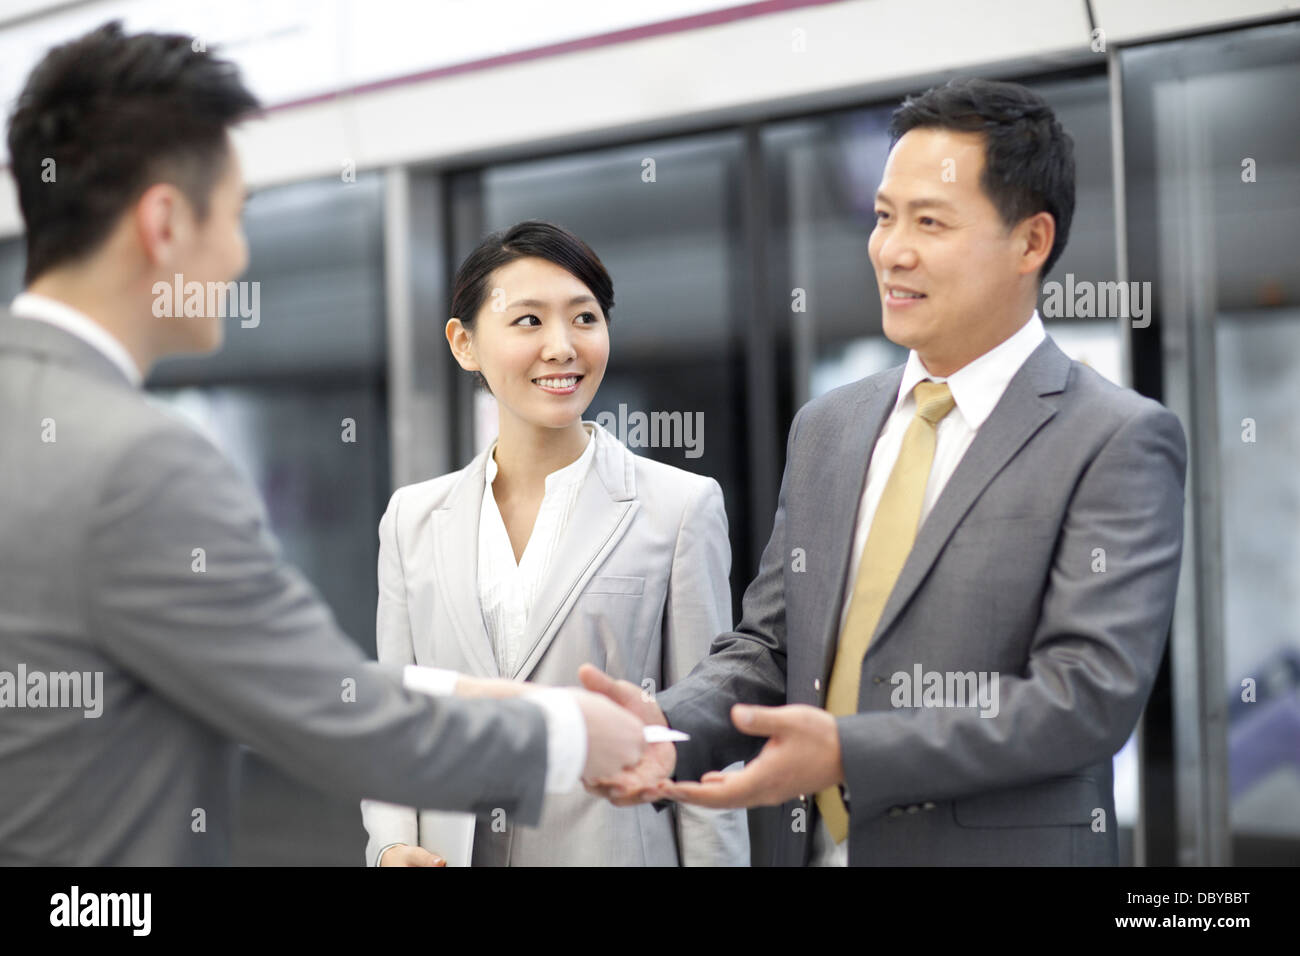 Business people exchanging business card at subway station - Stock Image